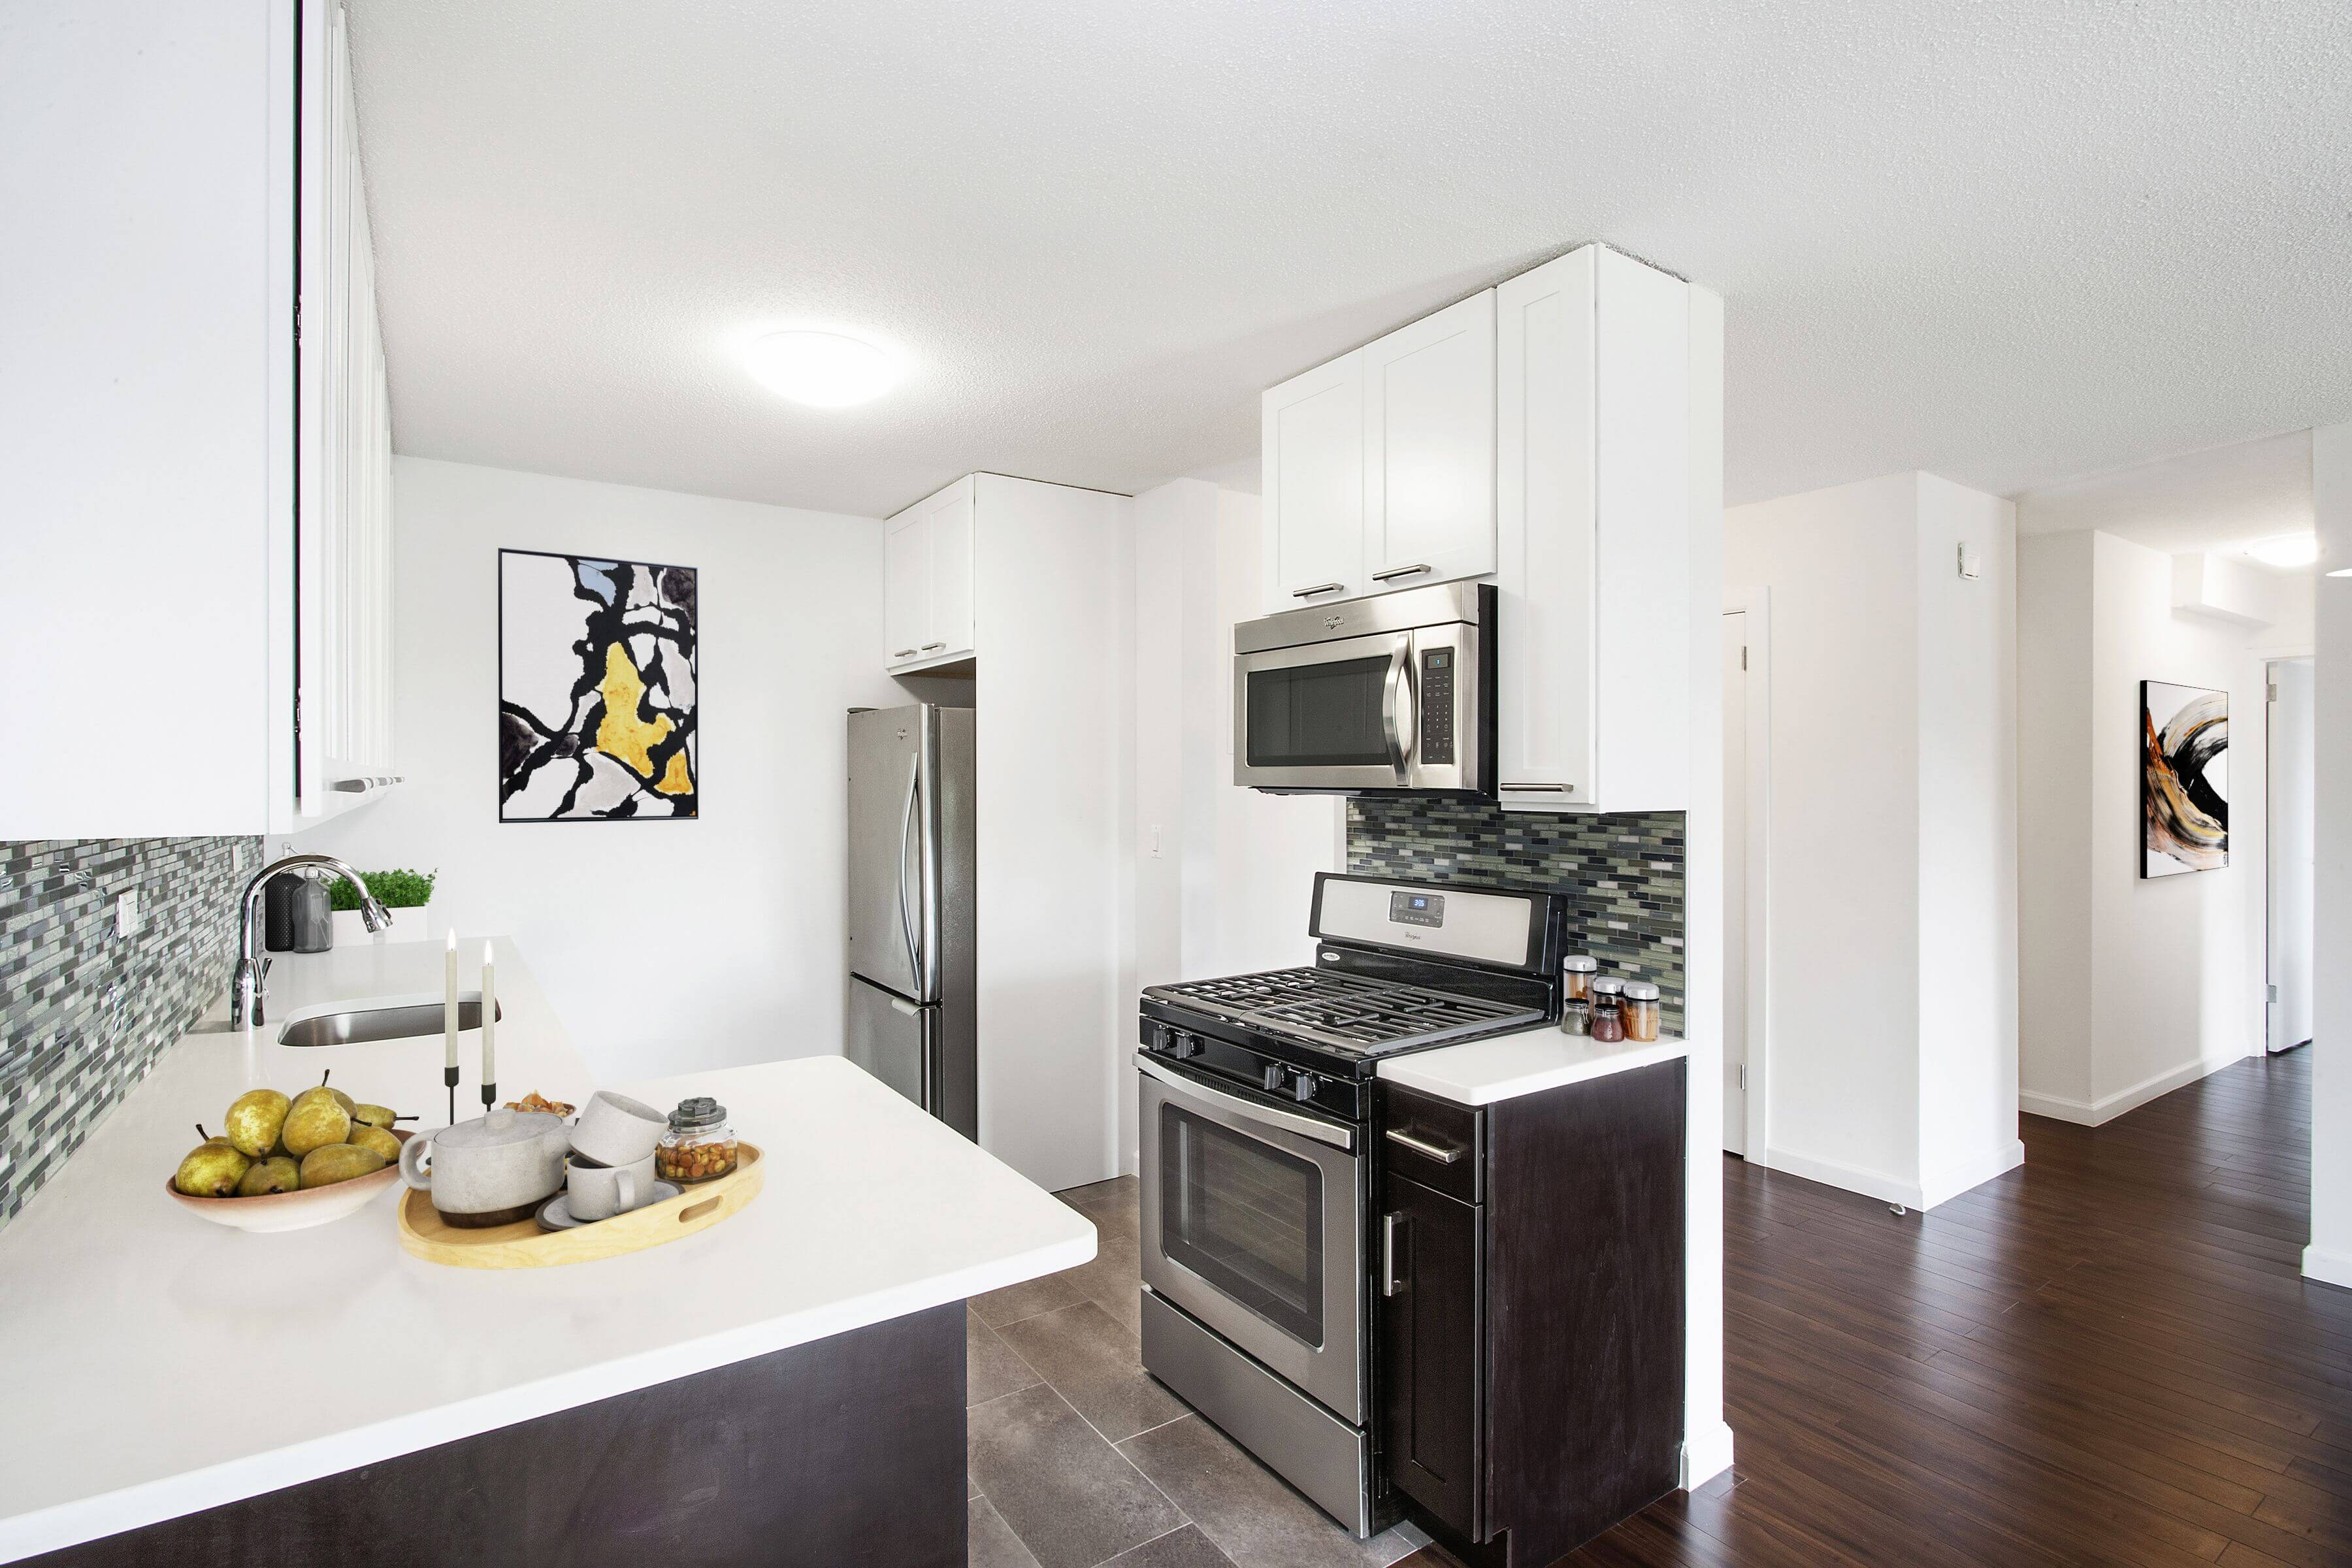 The modern kitchens at The Promenade, Located in Marble Hill at 150 west 225th street, have stainless steel Bosch & Fisher Paykel appliances.